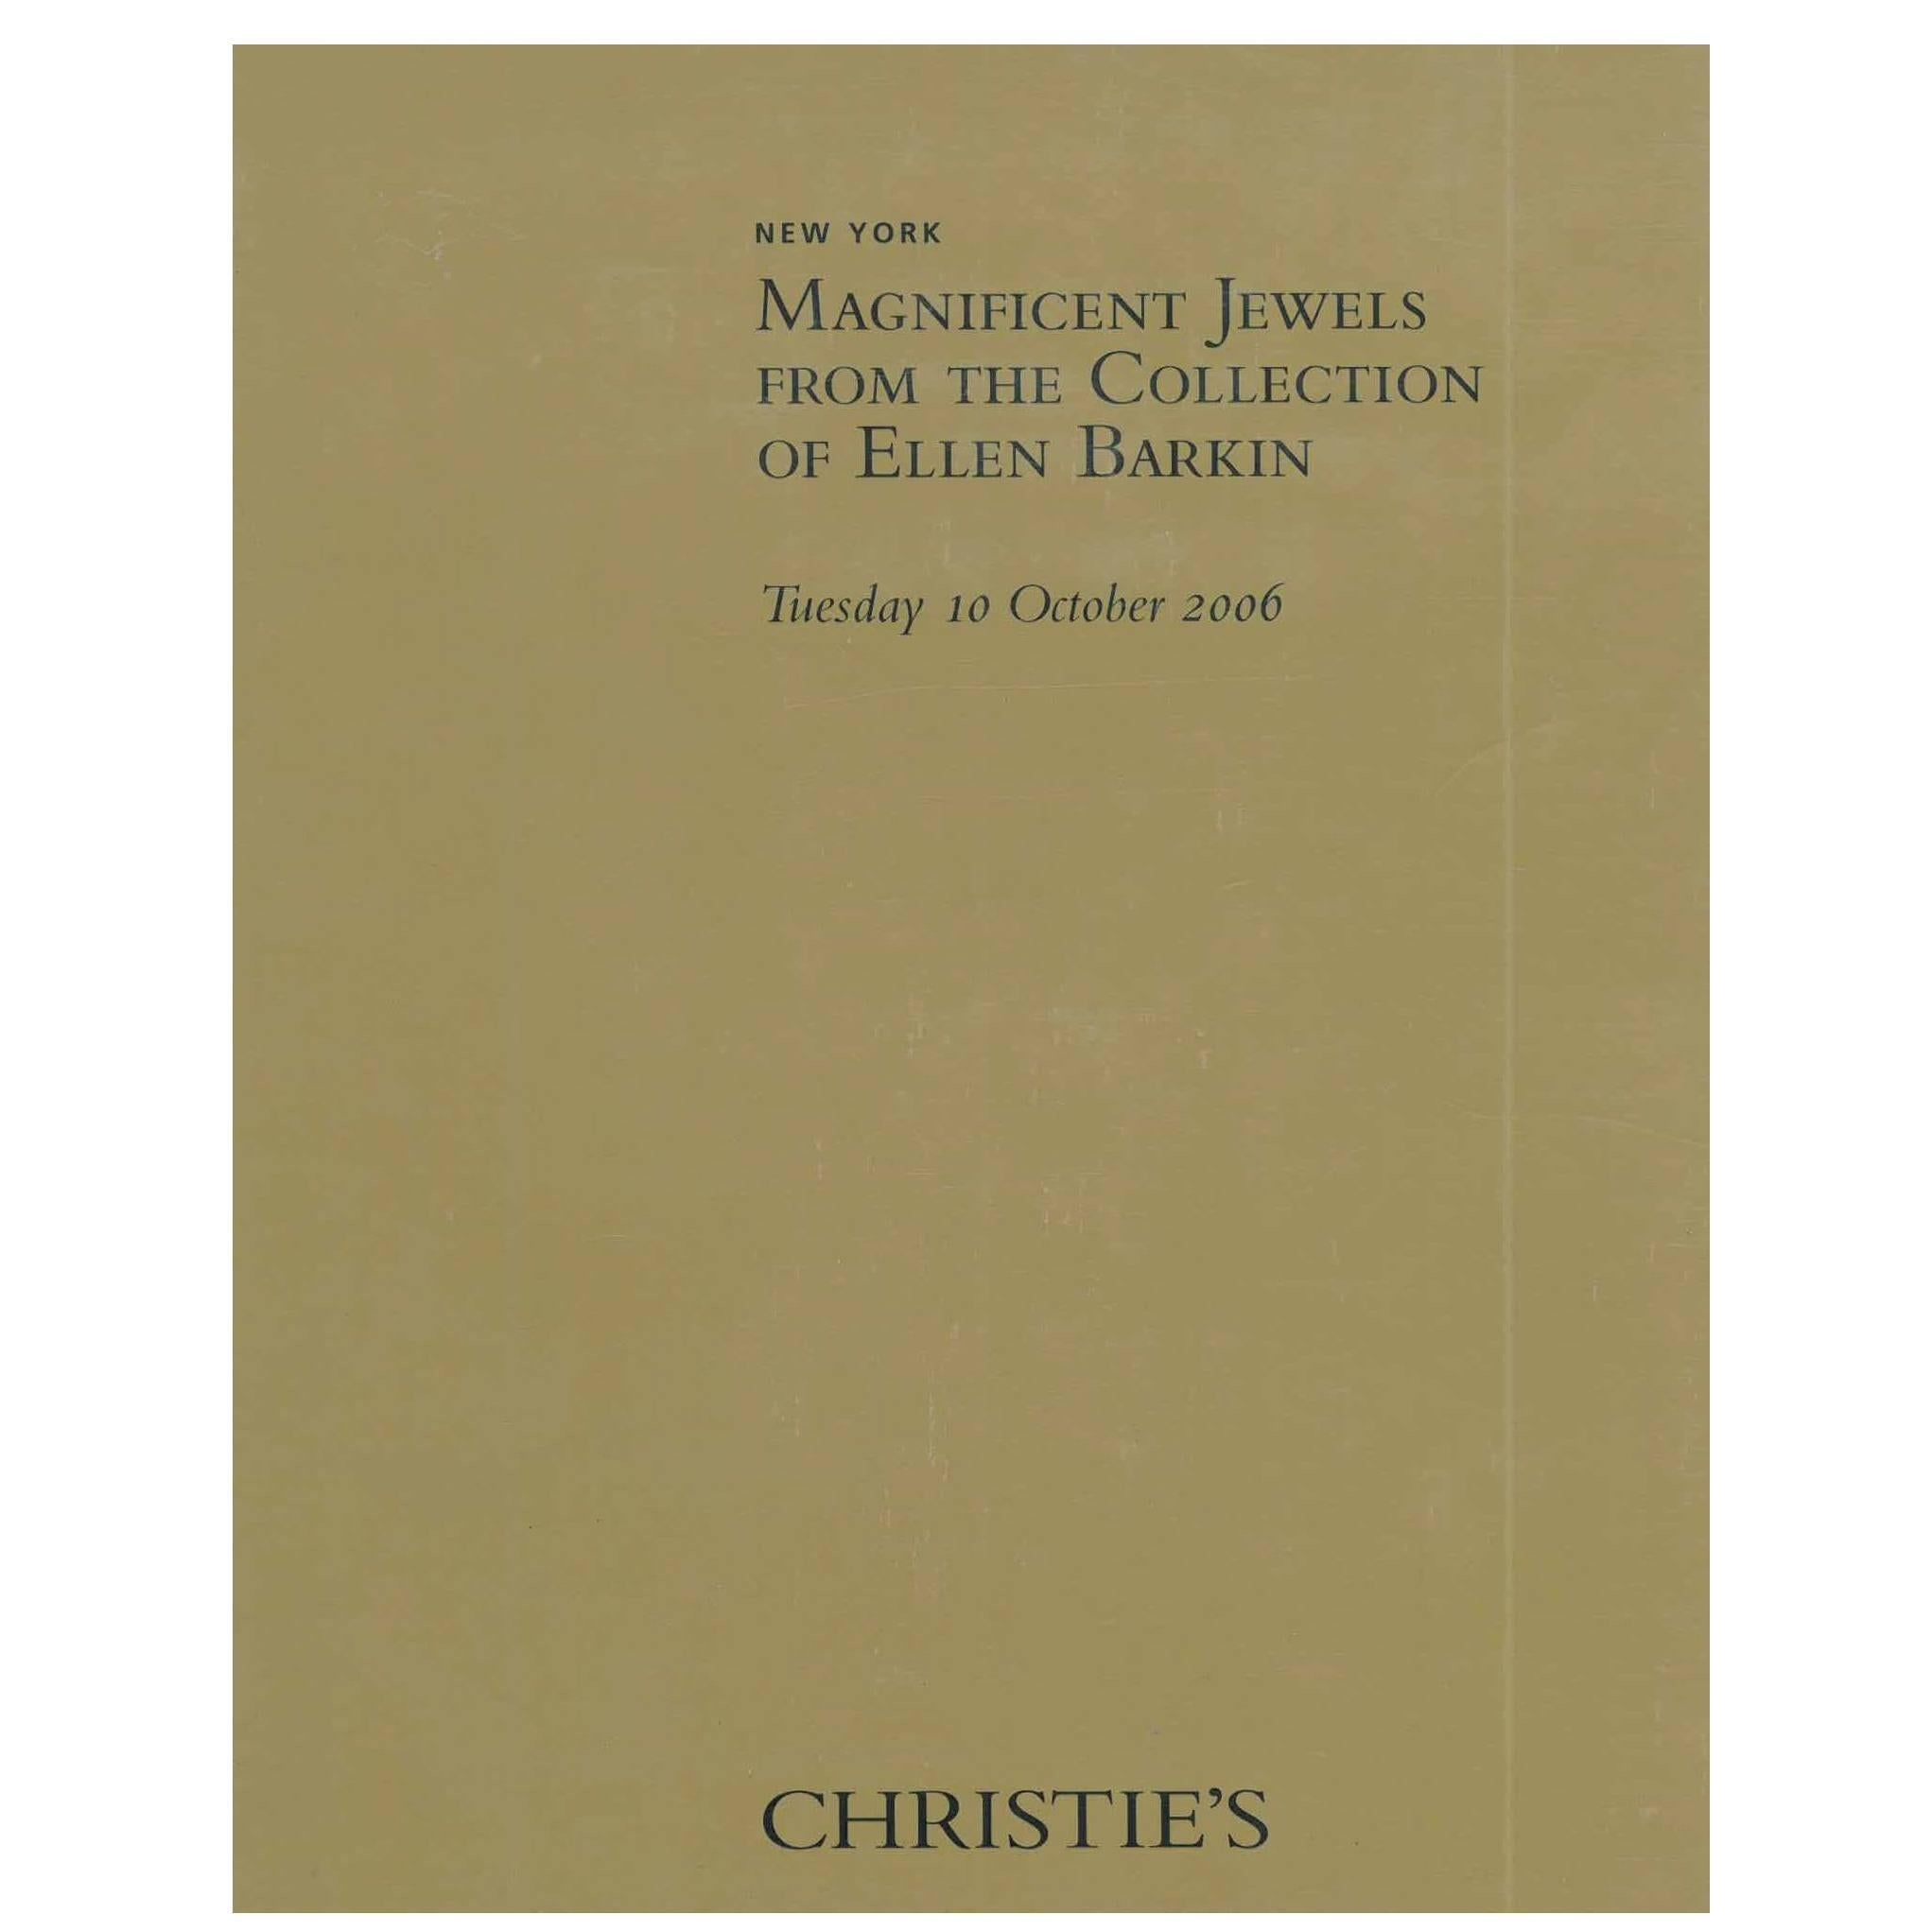 Book of Magnificent Jewels from the Collection of Ellen Barkin, Christie's